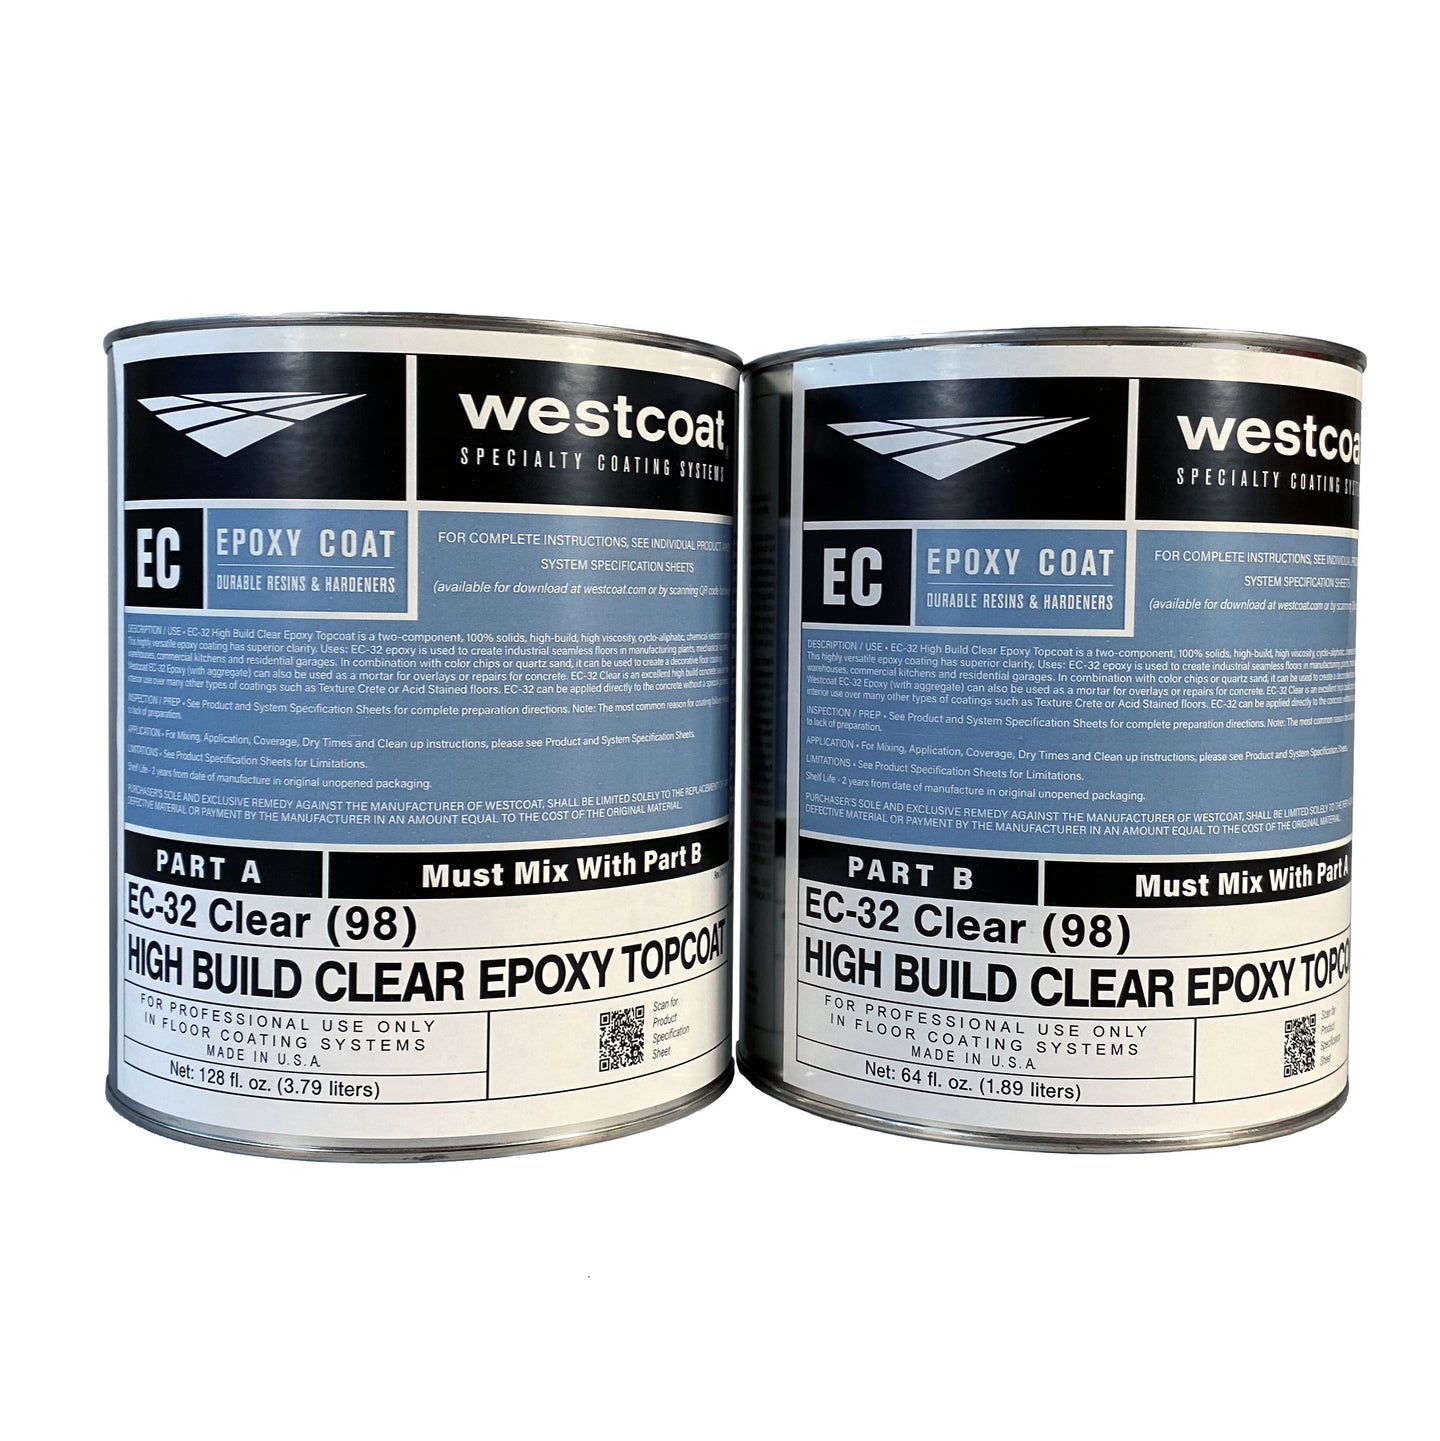 Westcoat EC-32 High Build Clear Epoxy 1-1/2 Gallon Kit